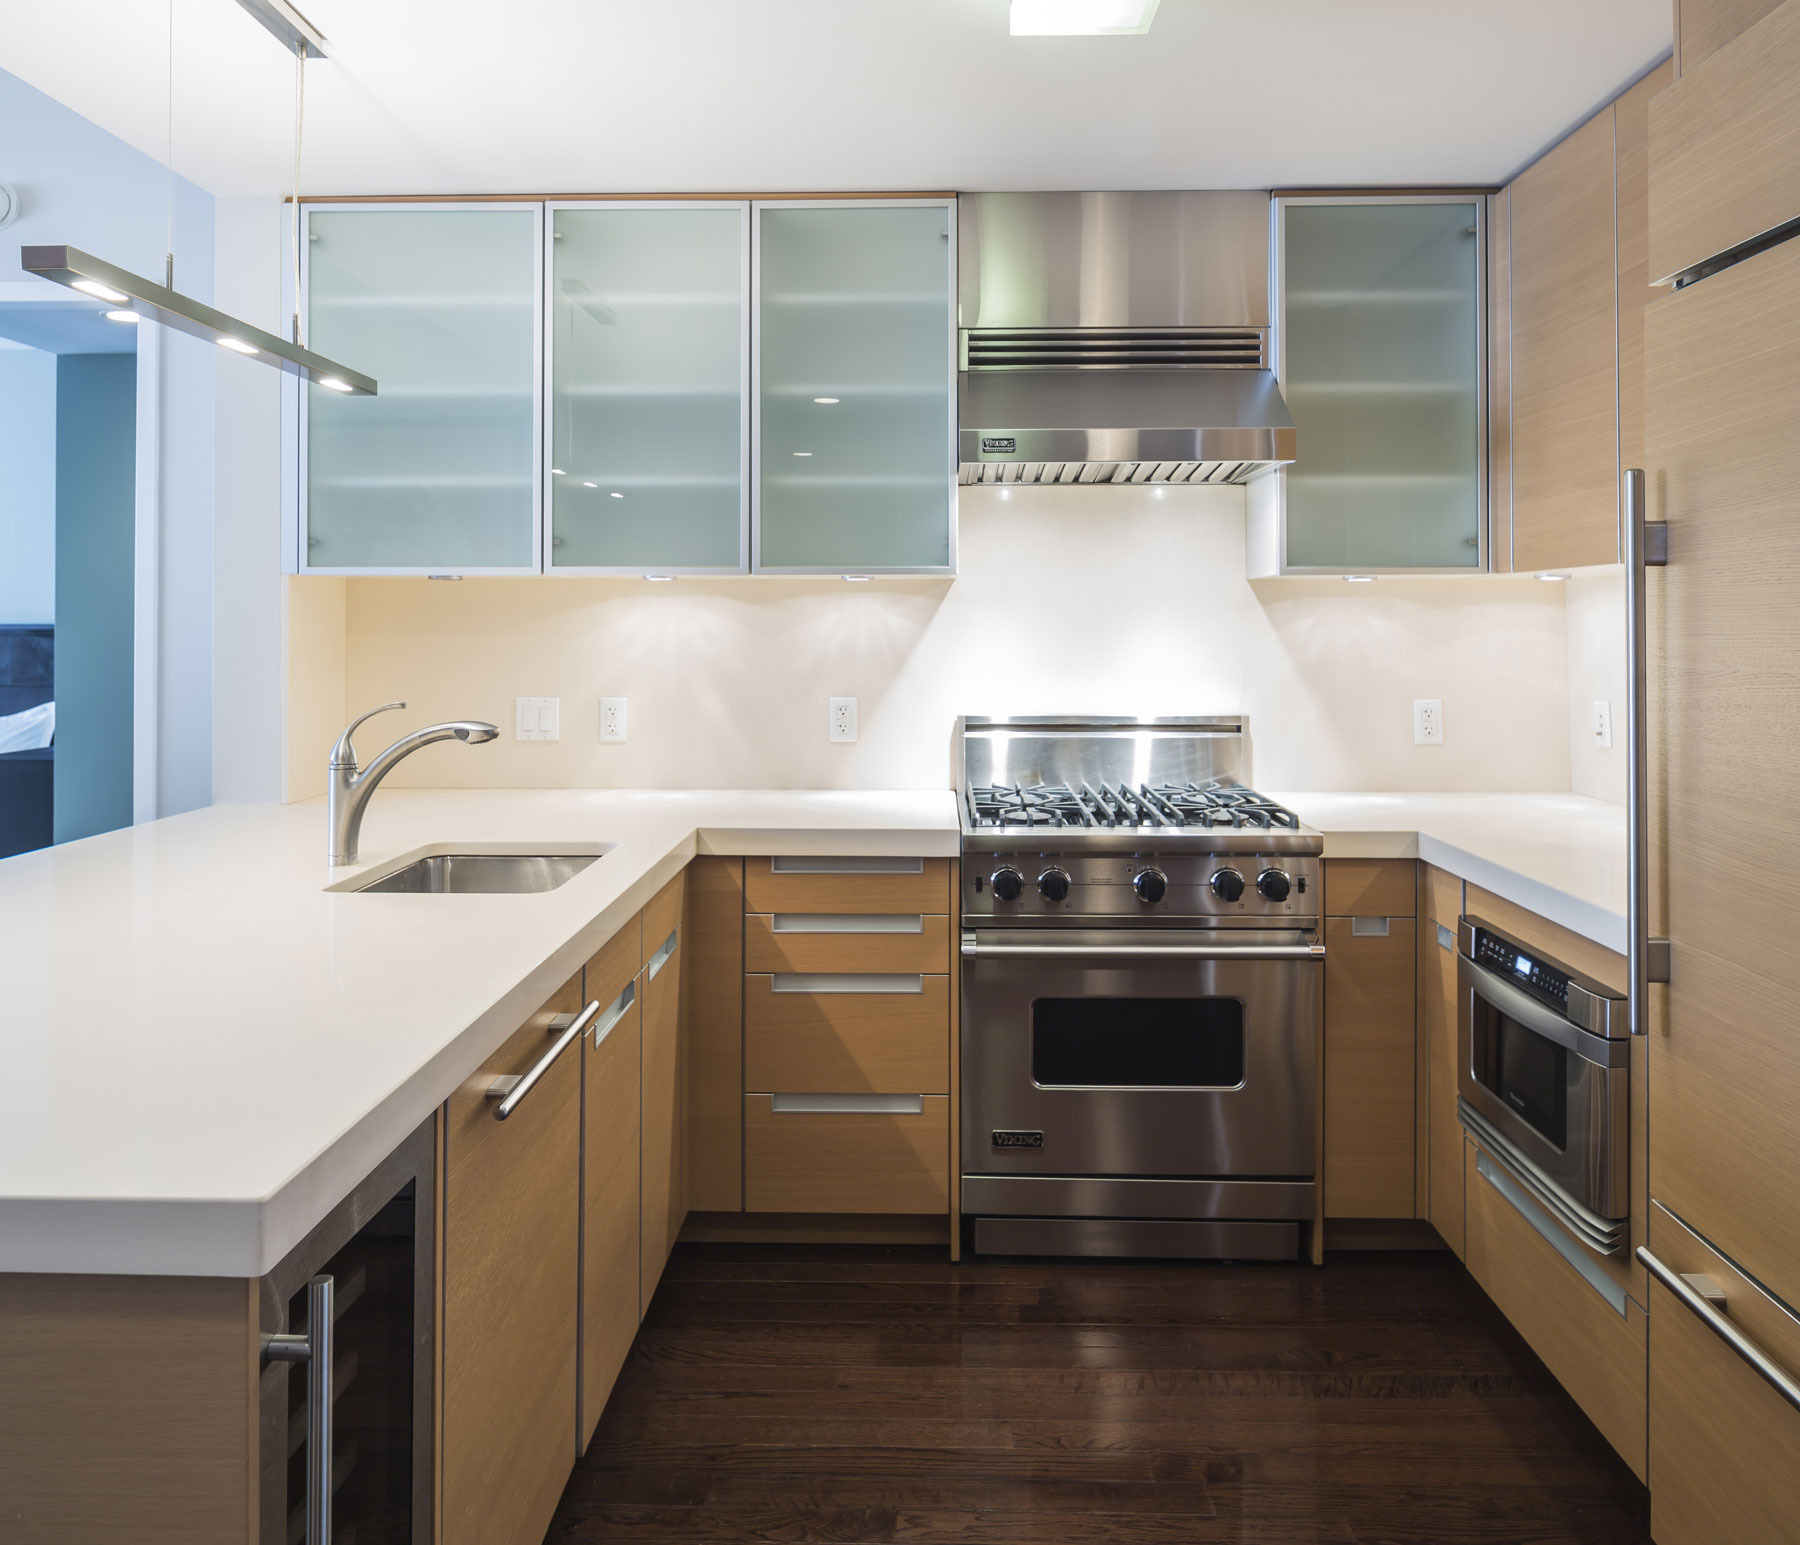 145 West 58th Street Rentals: StreetEasy: Hudson Hill Condominium At 462 West 58th